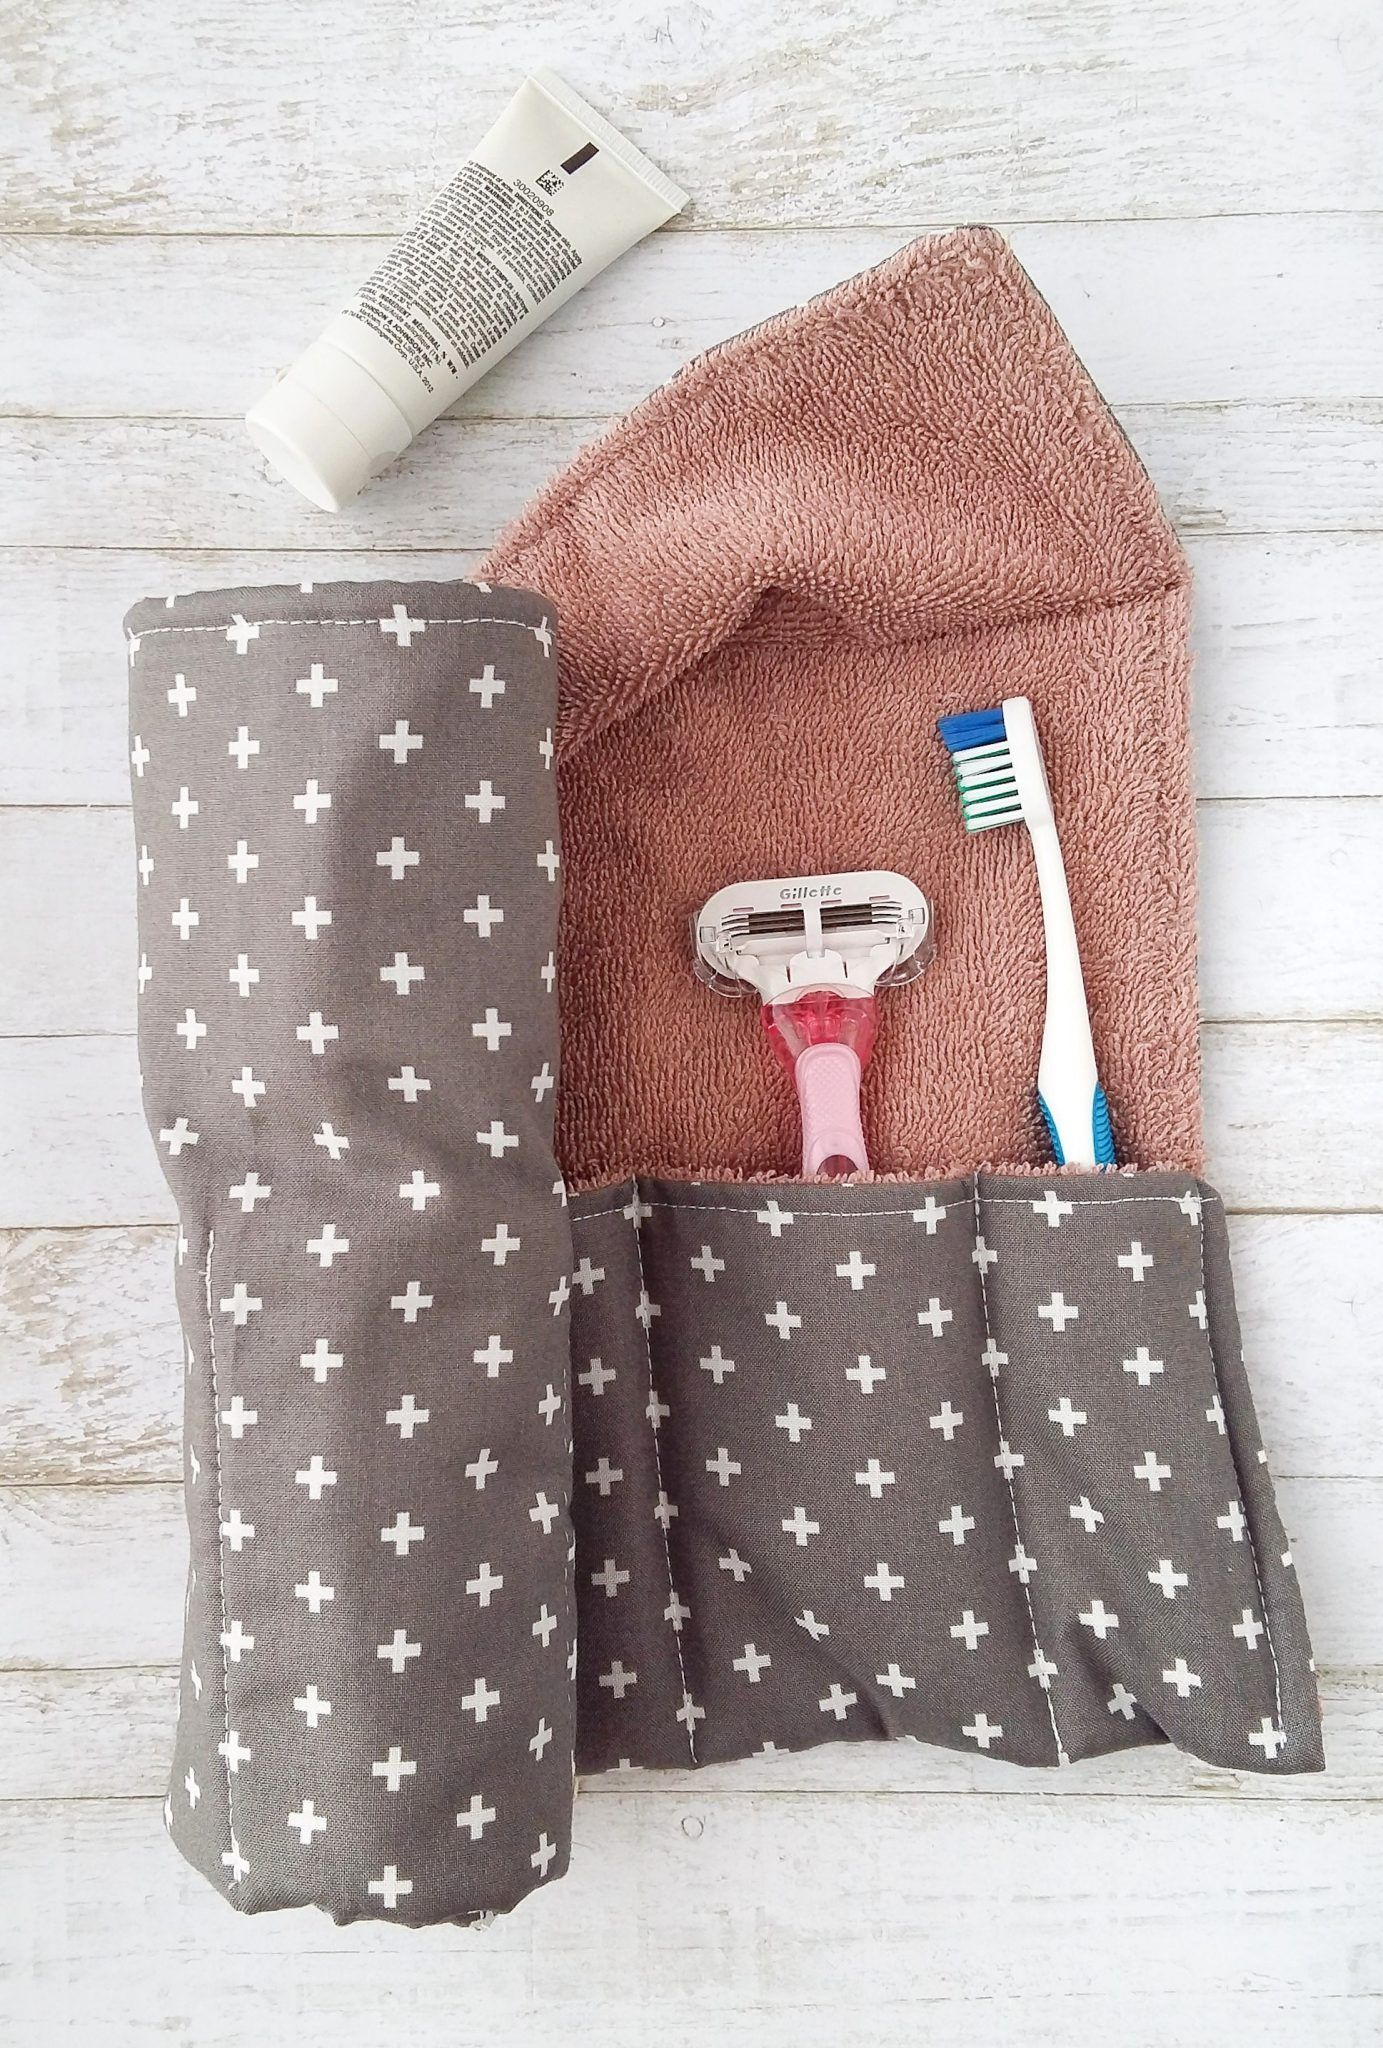 , DIY Toothbrush Travel Wrap | The Yellow Birdhouse, My Travels Blog 2020, My Travels Blog 2020